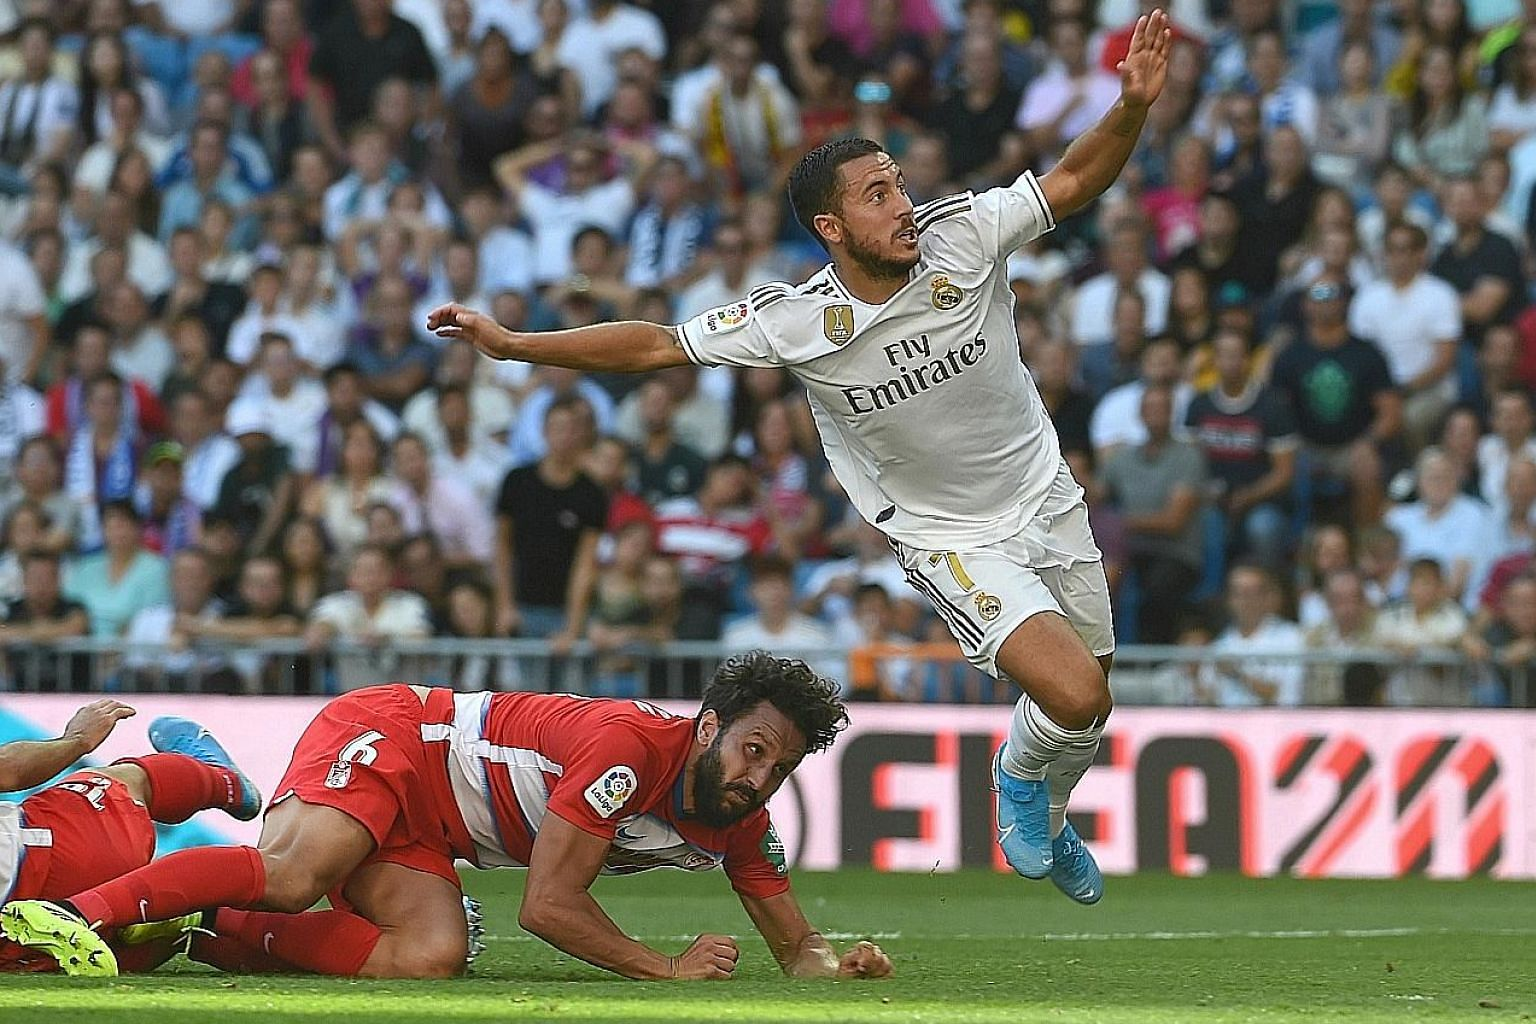 Real Madrid forward Eden Hazard finally opening his account for his new club in their 4-2 win against Granada on Saturday.